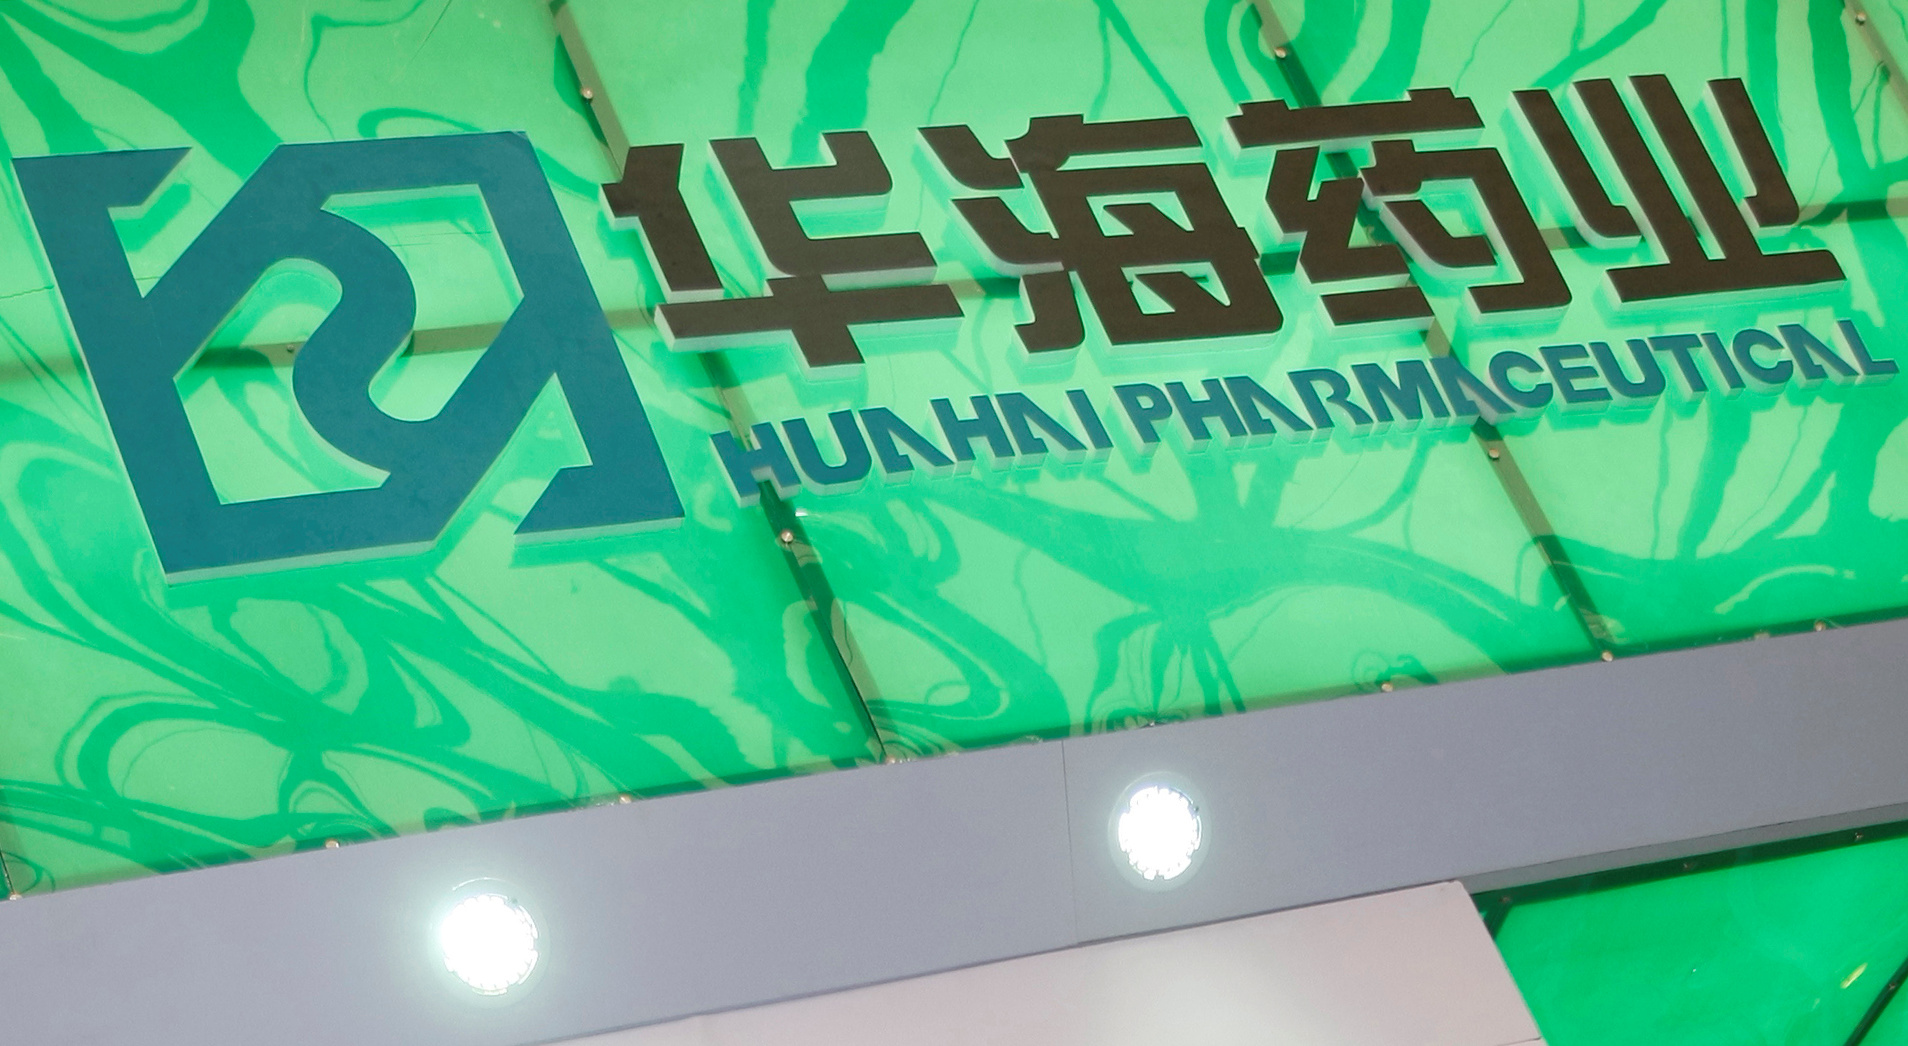 A logo of drug manufacturer Zhejiang Huahai Pharmaceutical Co. Ltd is seen at a pharmaceutical products fair in Shanghai, China, June 24, 2008. Picture taken June 24, 2008. REUTERS/Stringer